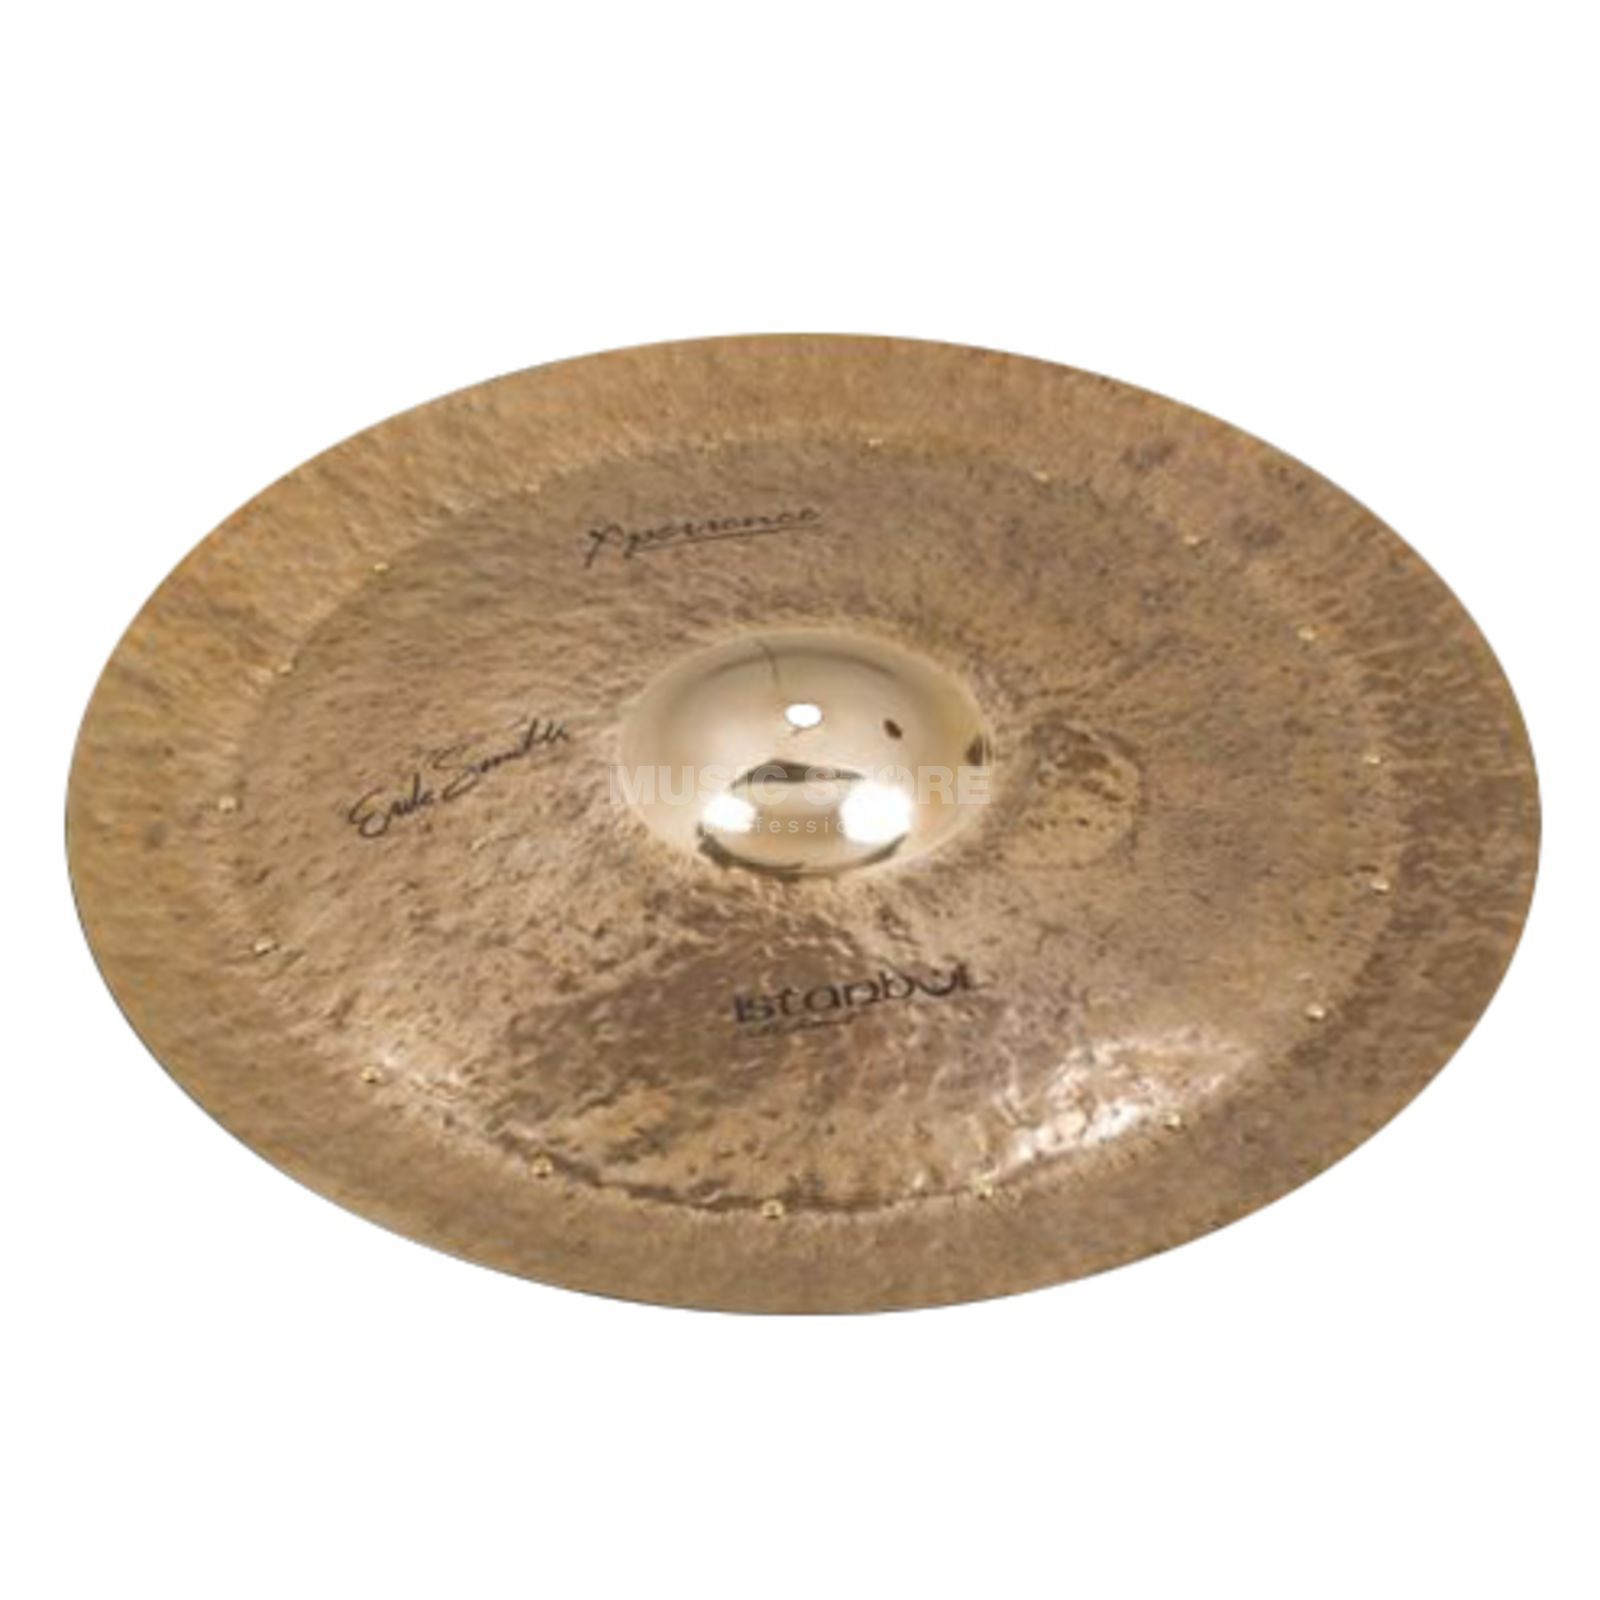 "Istanbul Erik Smith Swish Ride 22"", Signature, B-Stock Imagem do produto"